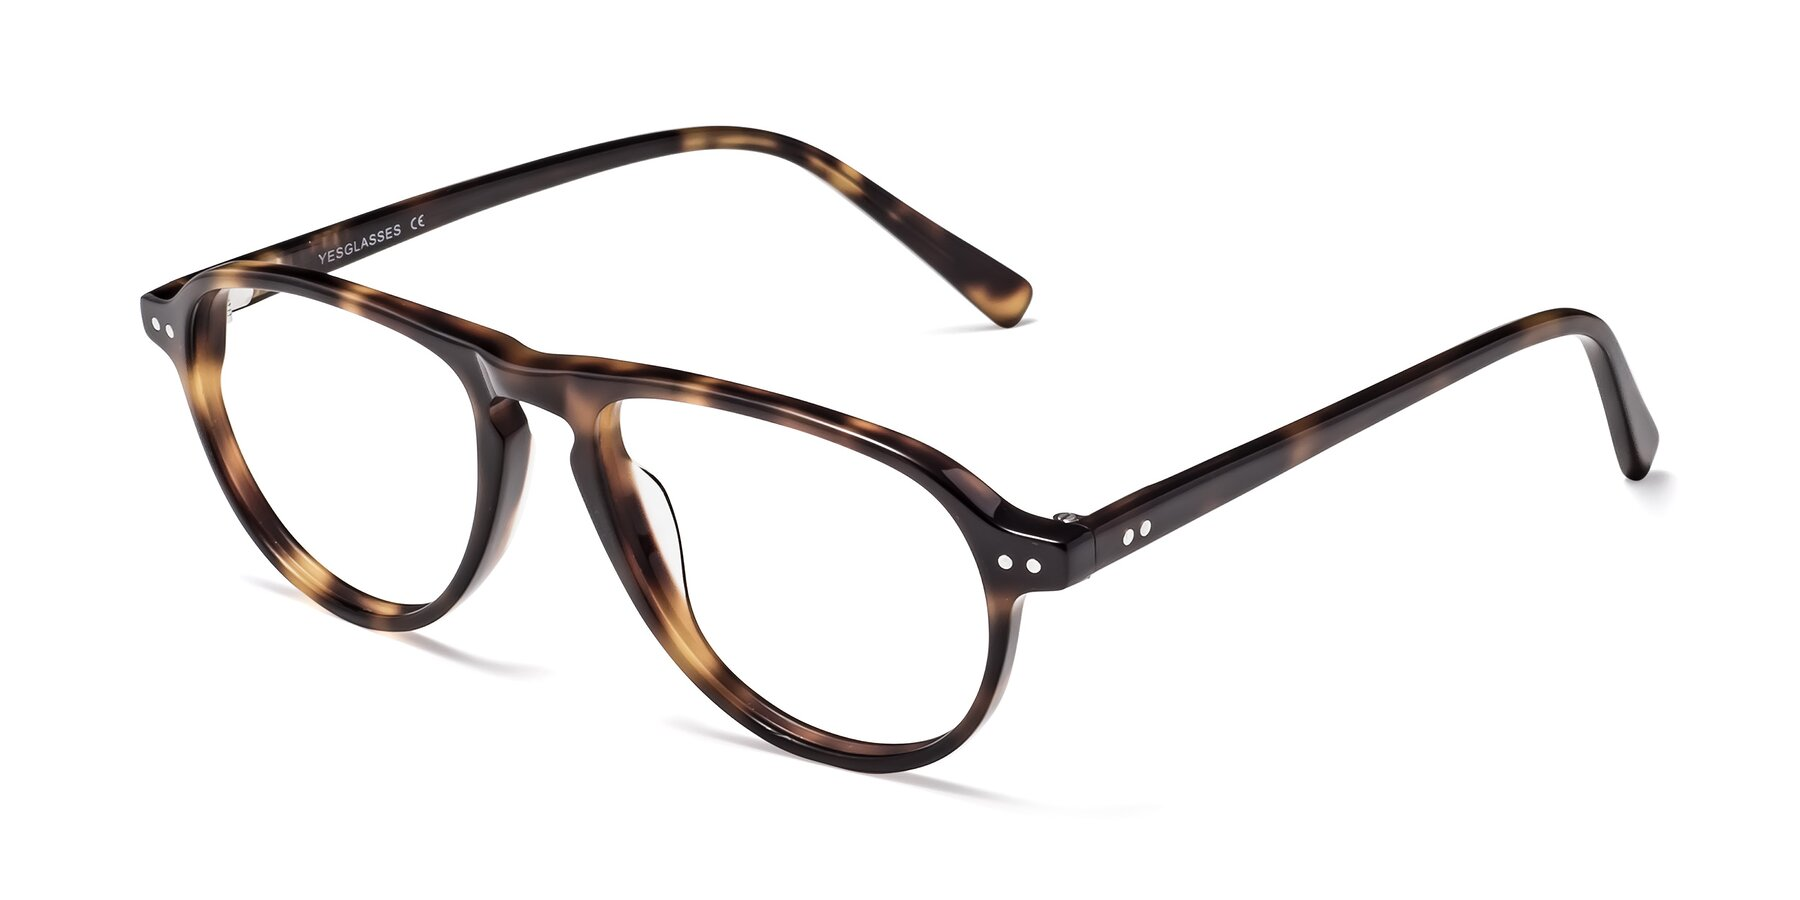 Angle of 17544 in Tortoise with Clear Blue Light Blocking Lenses